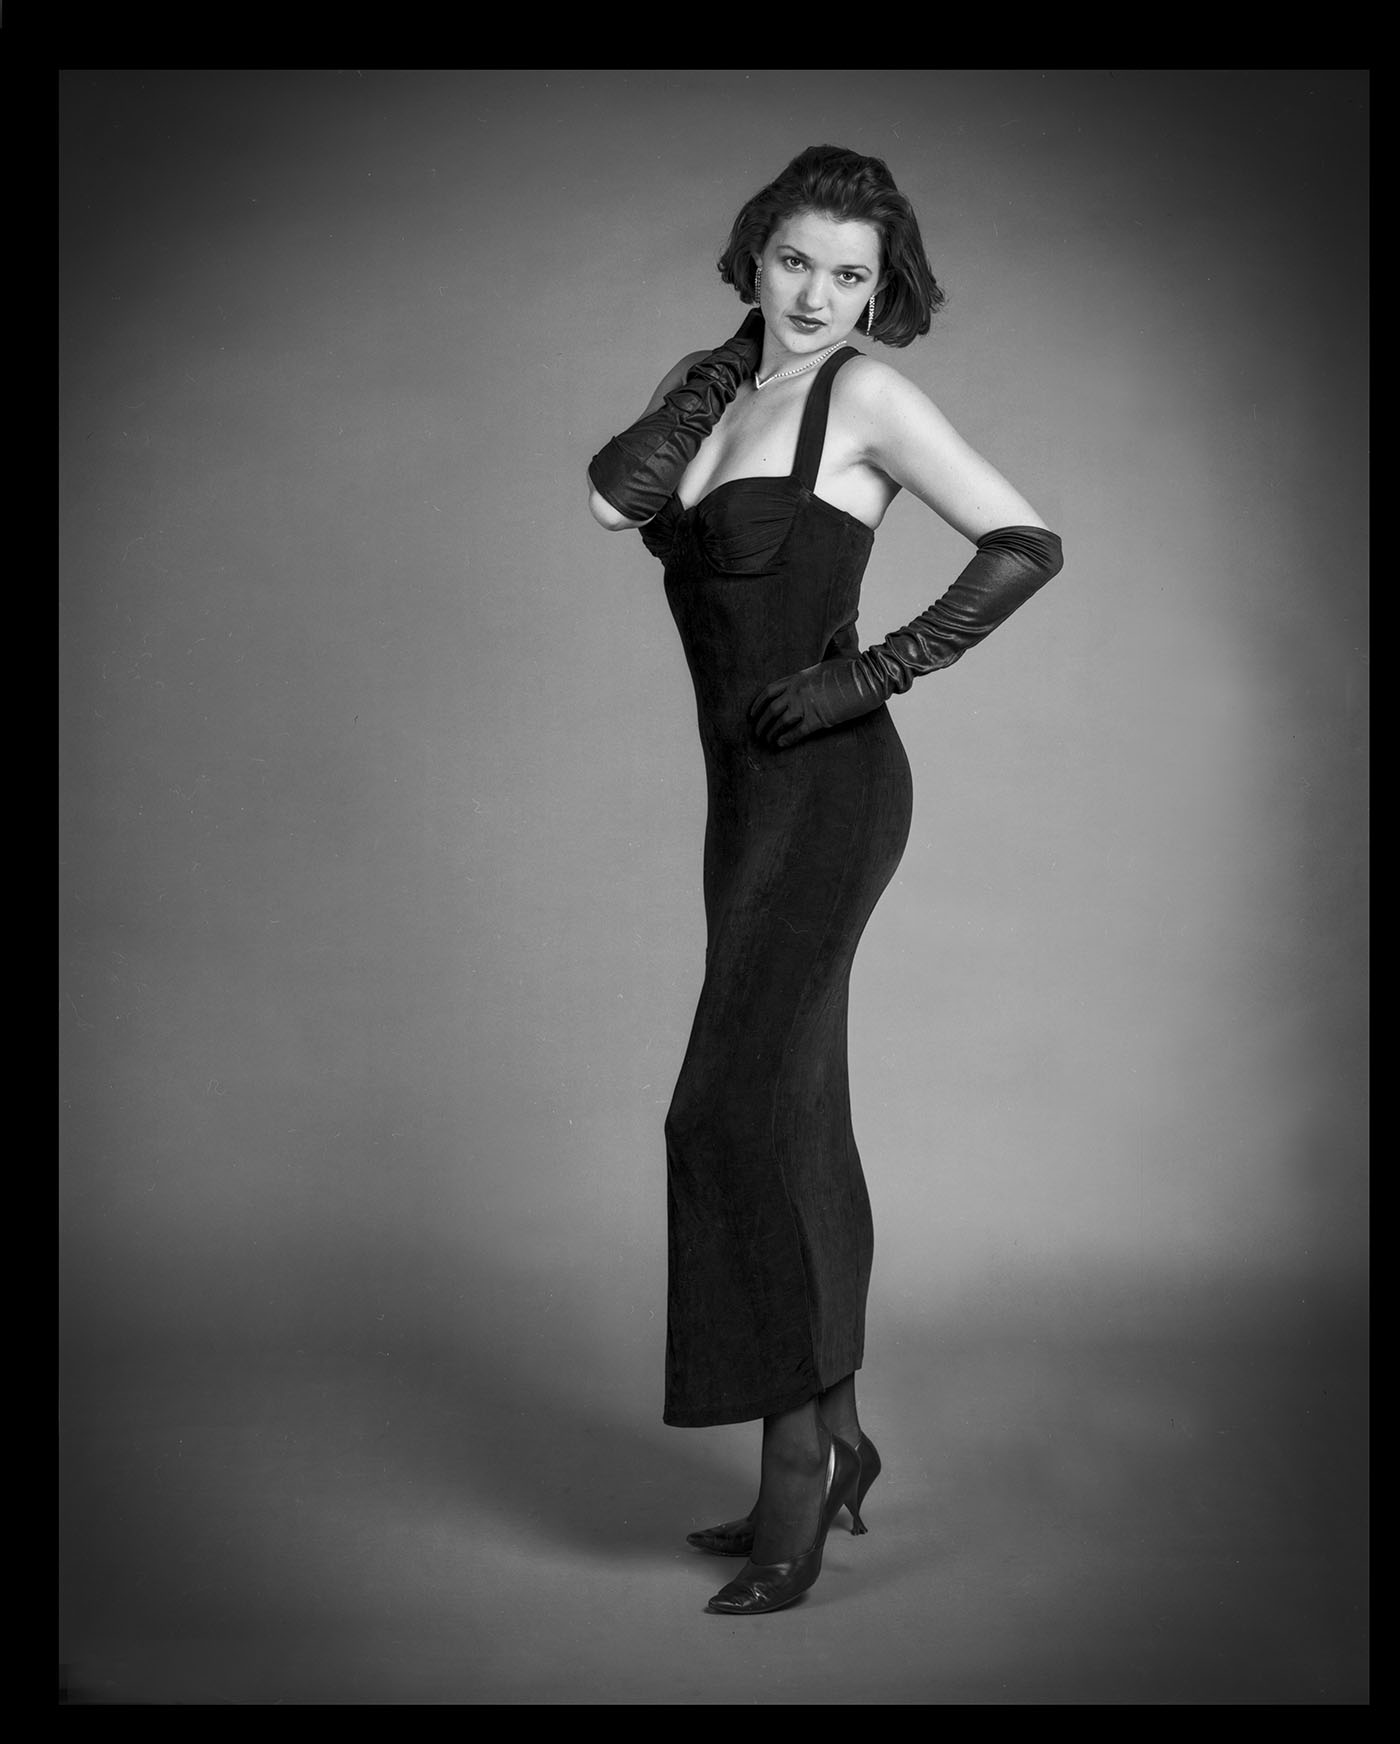 Black and white glamour portraIt